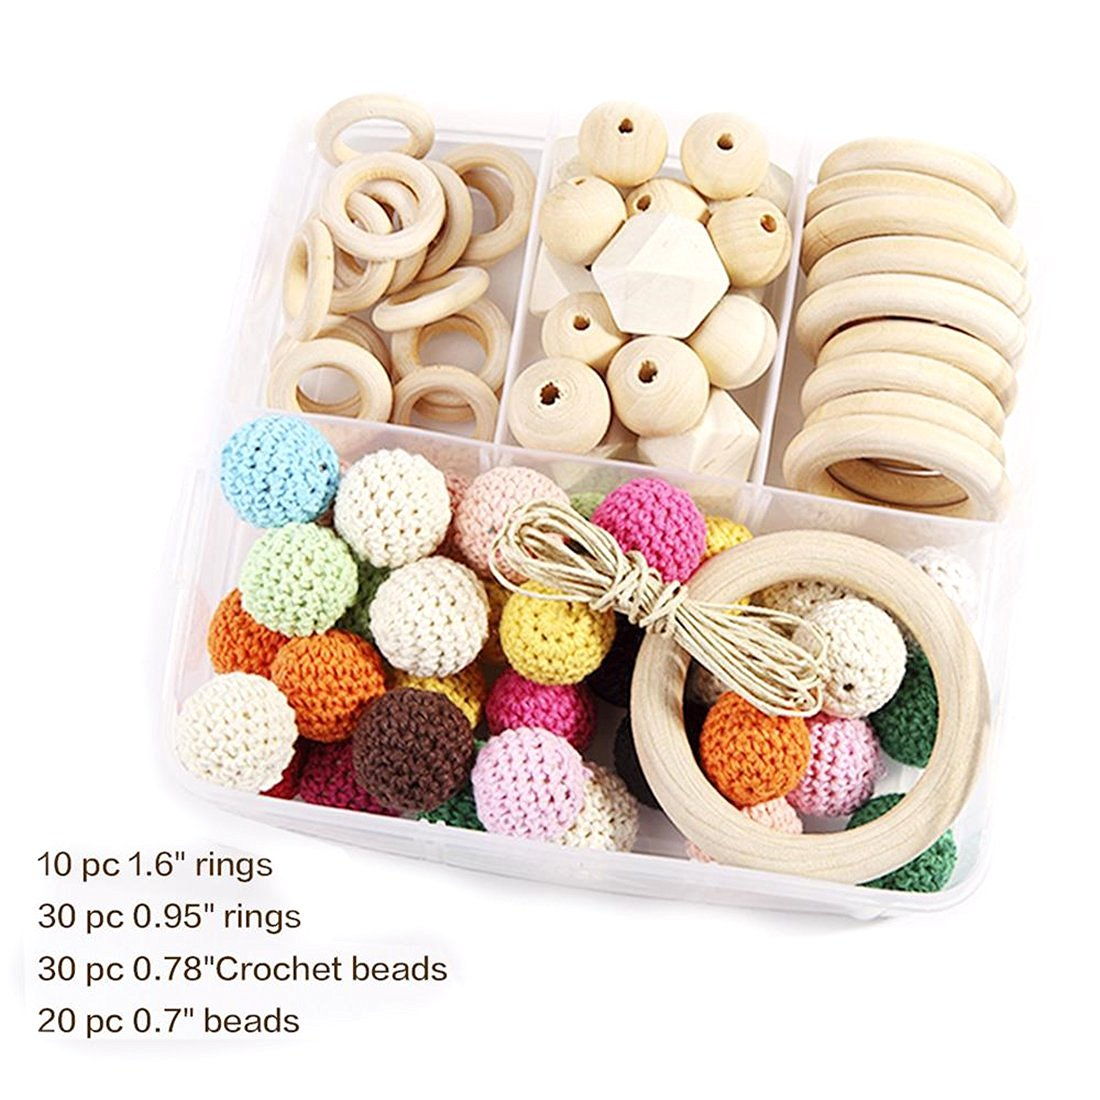 Natural Wooden Rings and Wooden Crochet Set Diy Nursing Necklace Teething Necklace Set Eco Baby New Baby Accessories Nursing